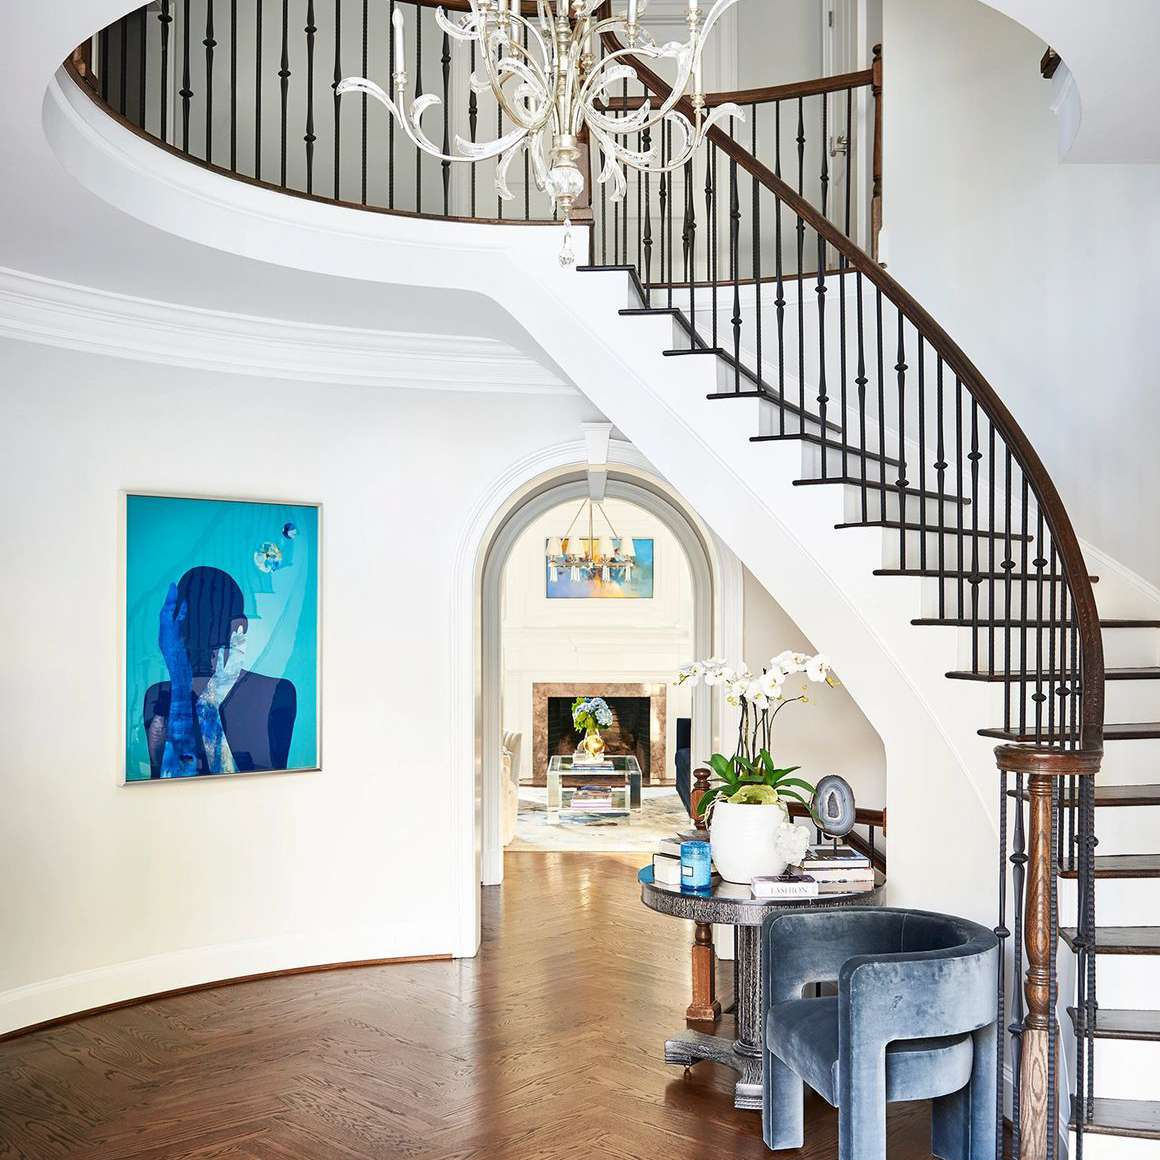 neutral wall with vibrant large art piece